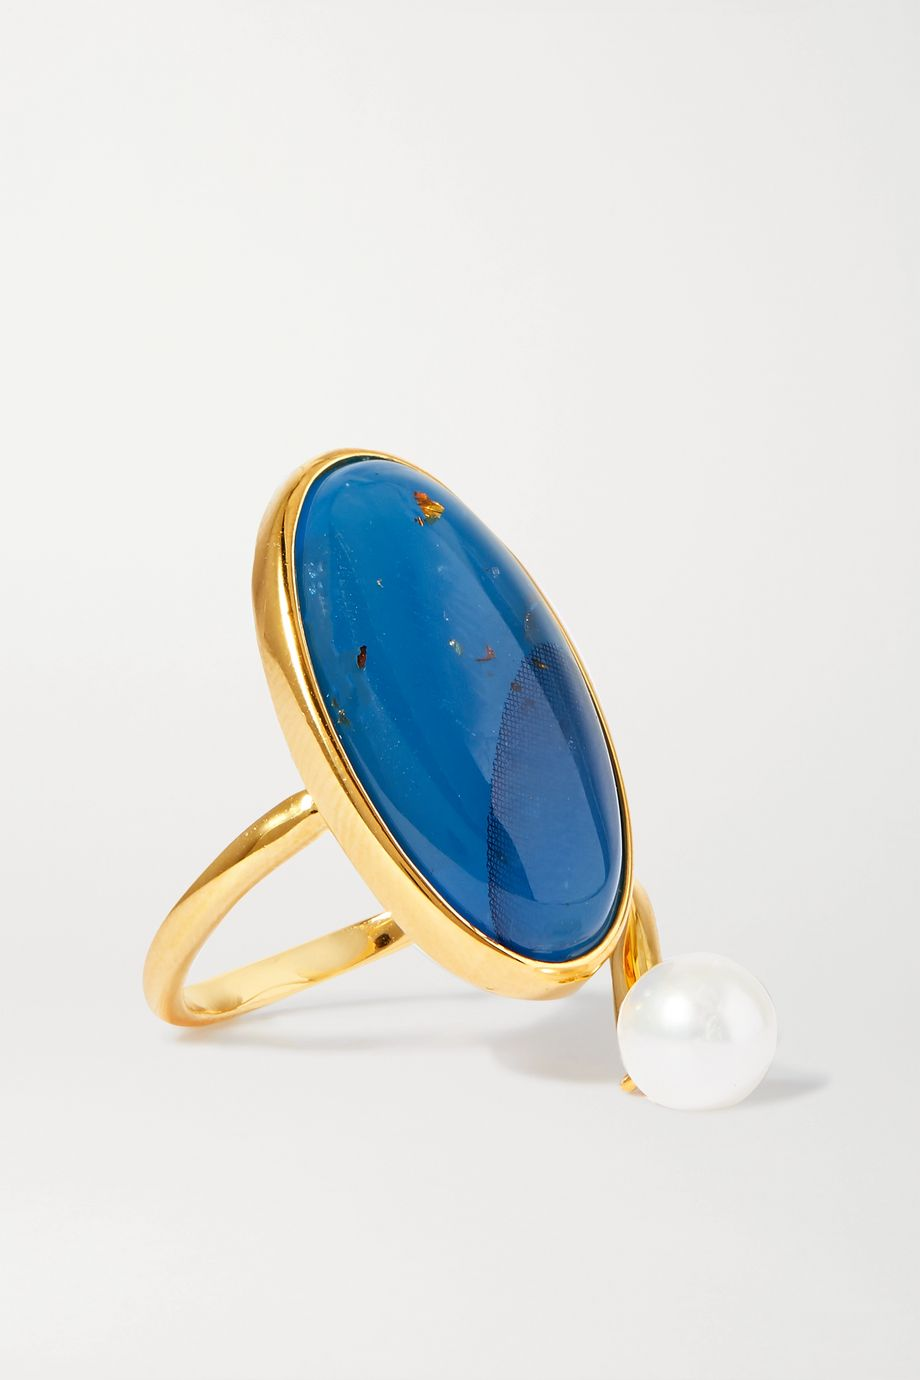 Ejing Zhang Geo gold-plated, resin and pearl ring